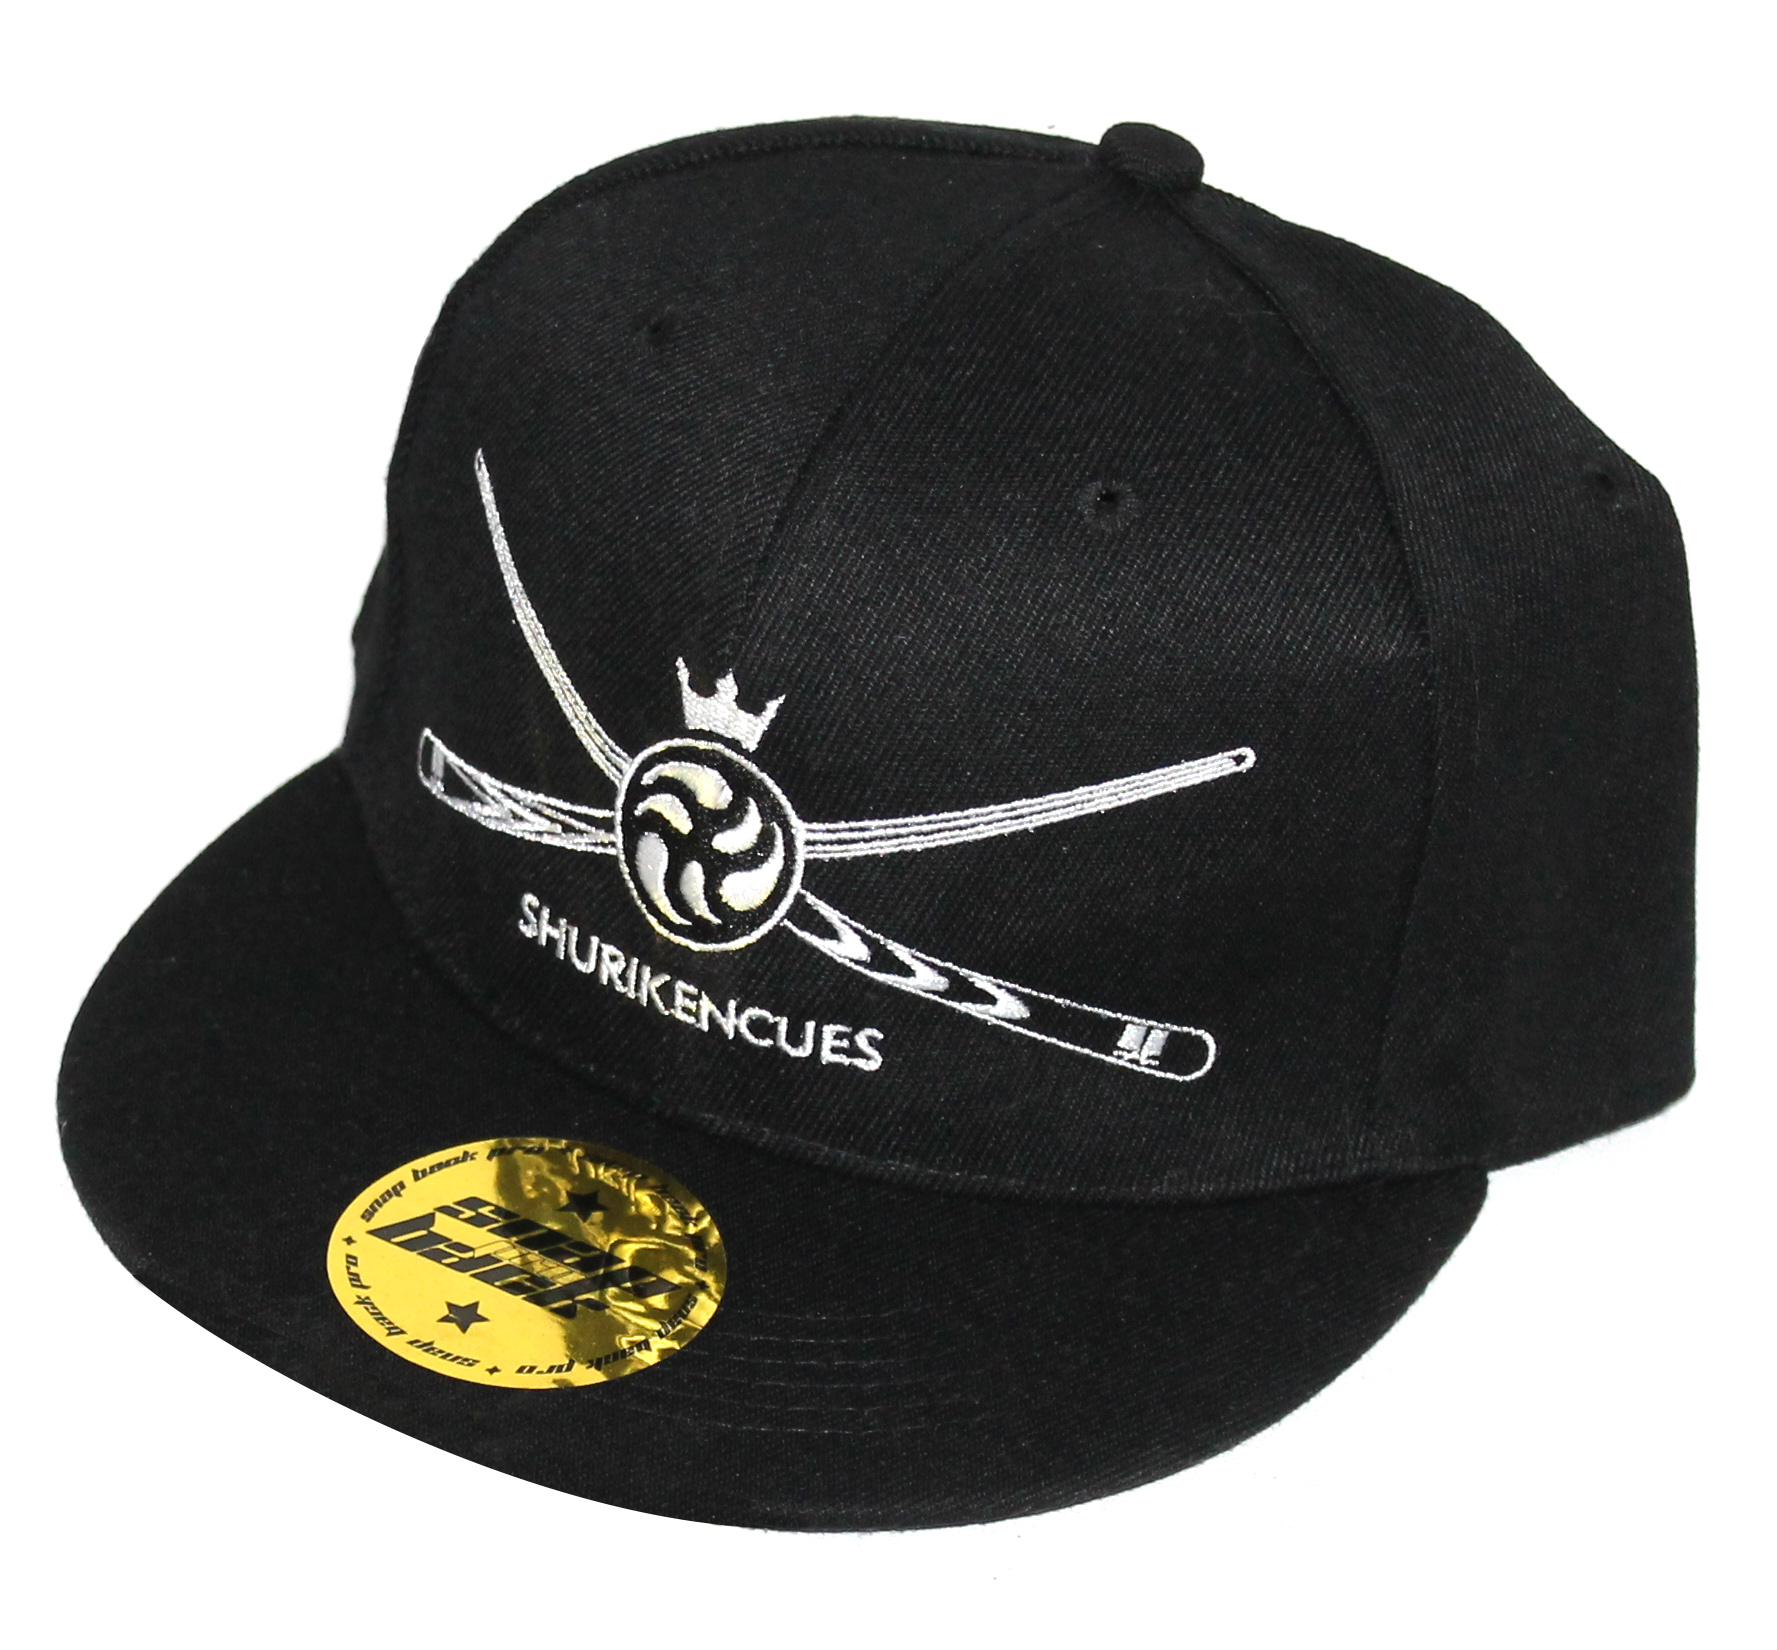 firm snapback shurikencues hat cap snap back